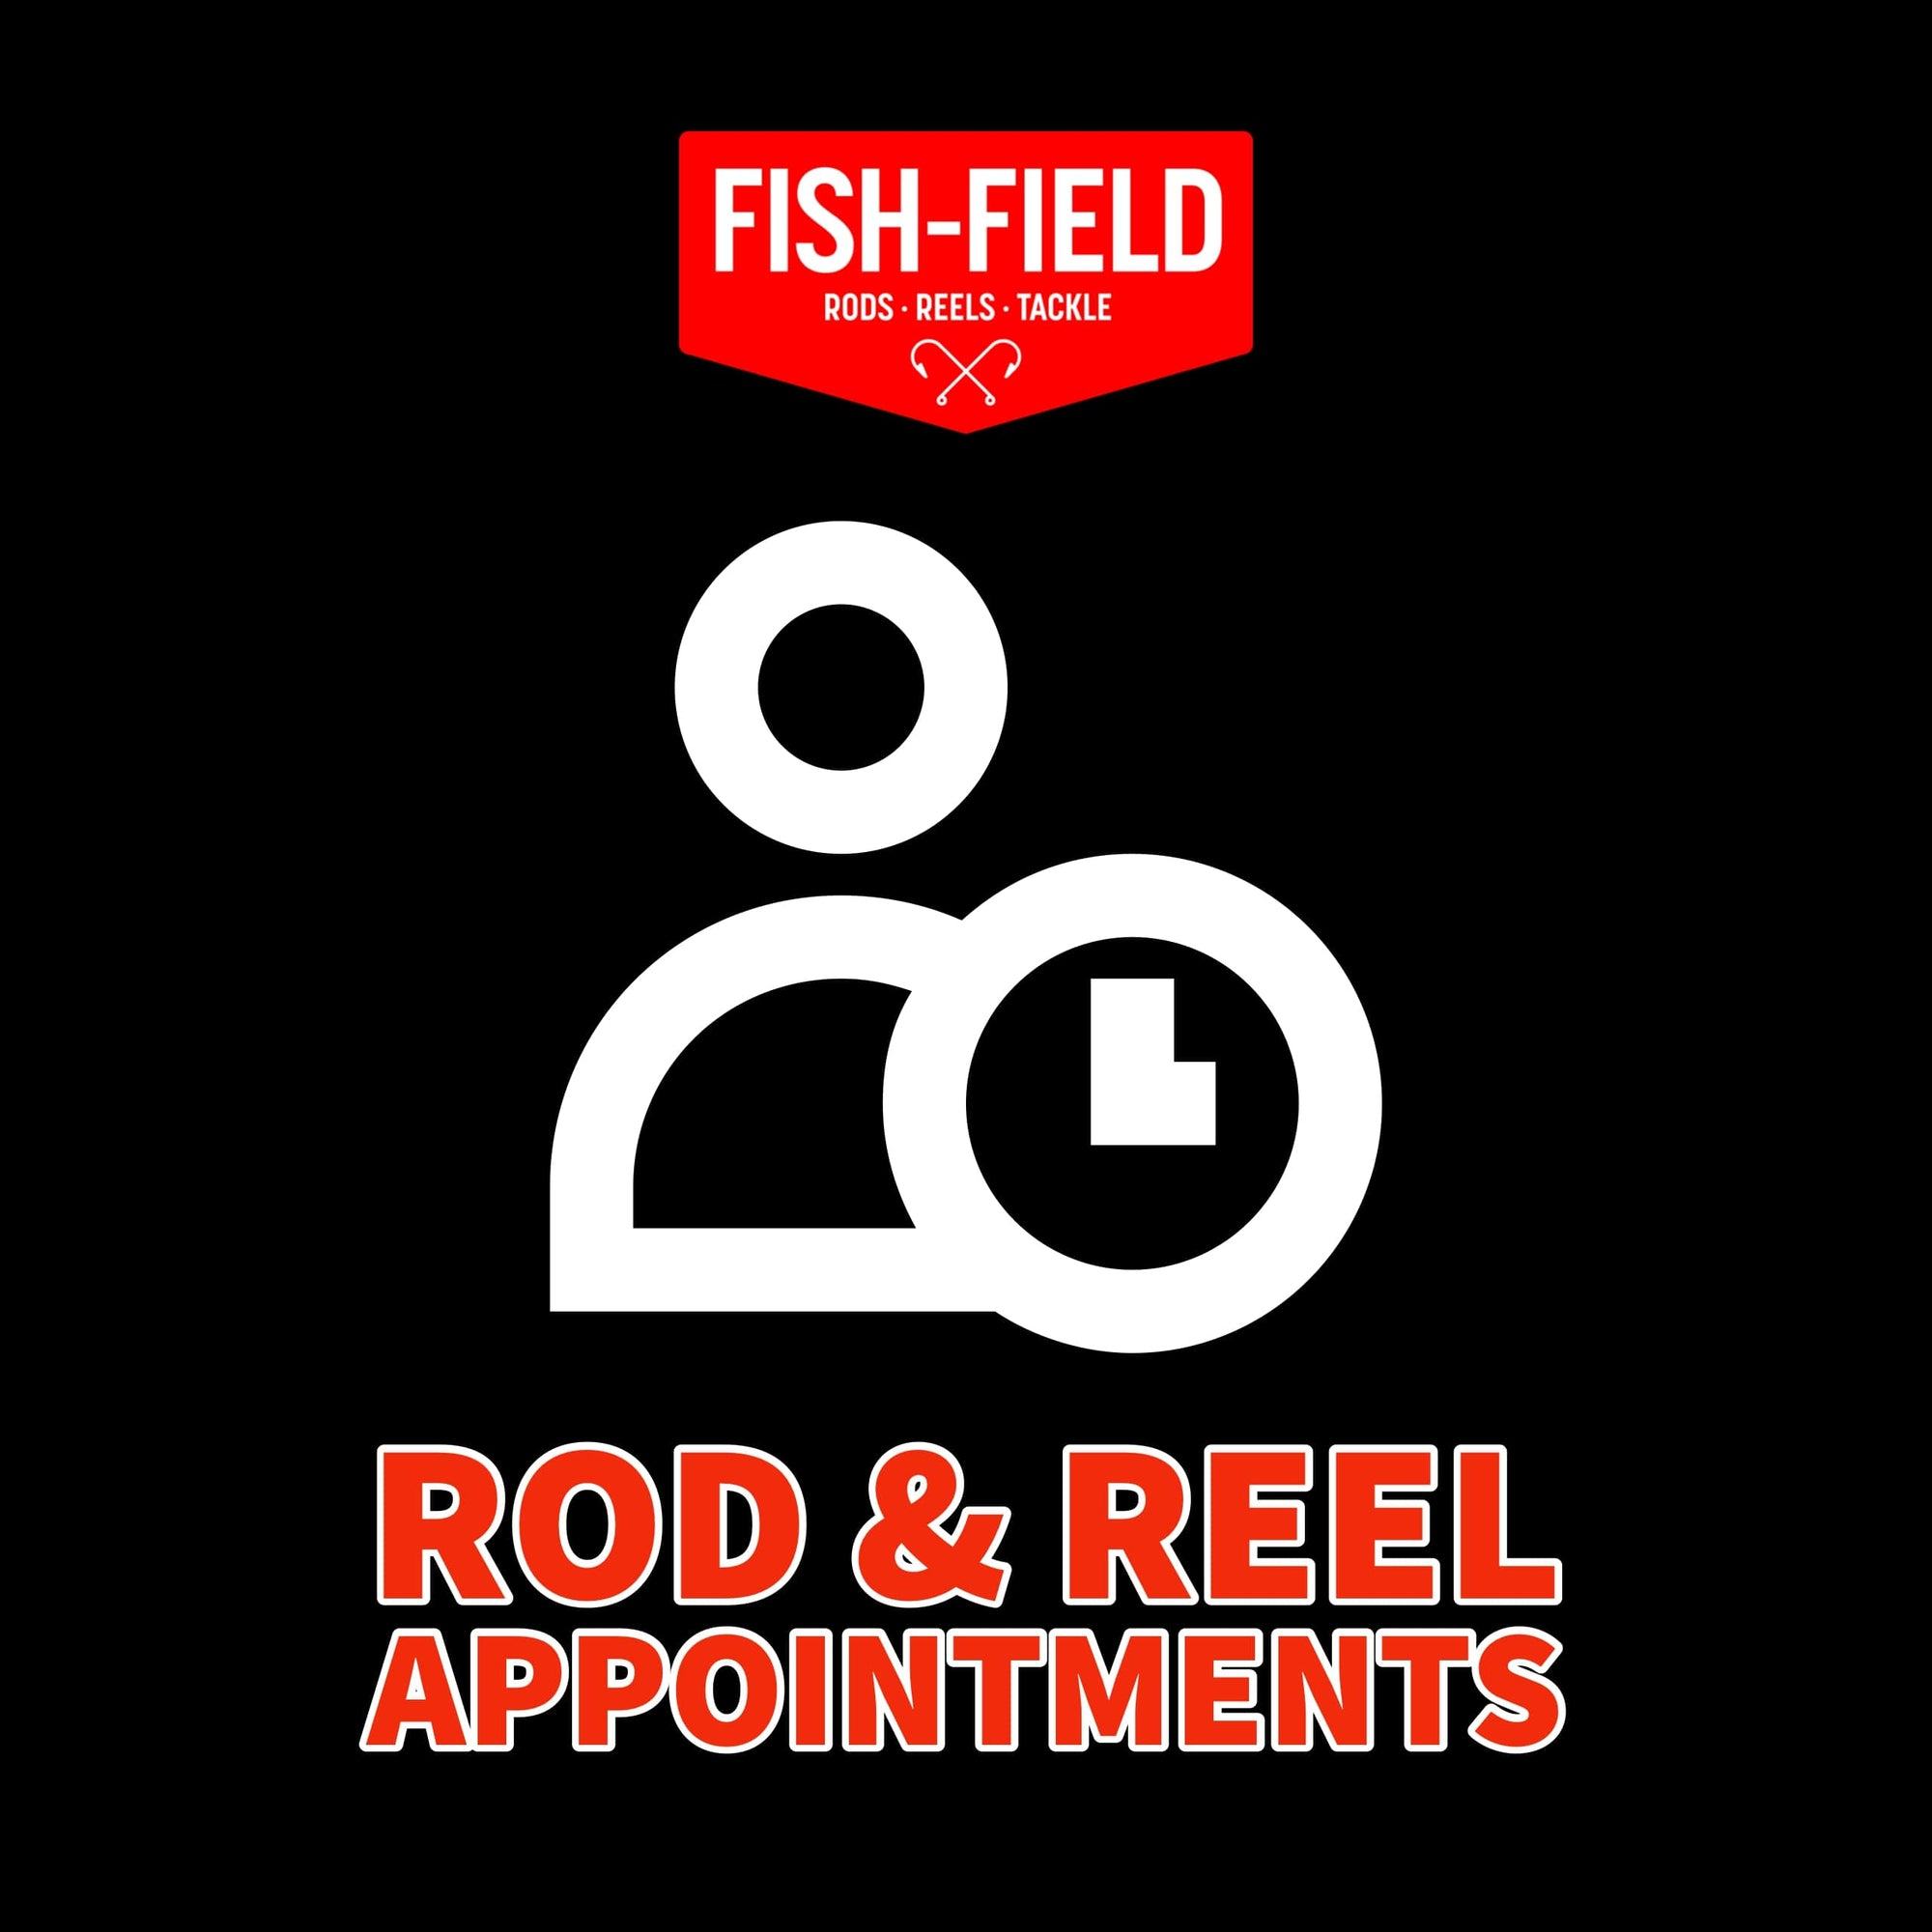 Appointment @ Fish-Field for Rods & Reels Service Fish-Field